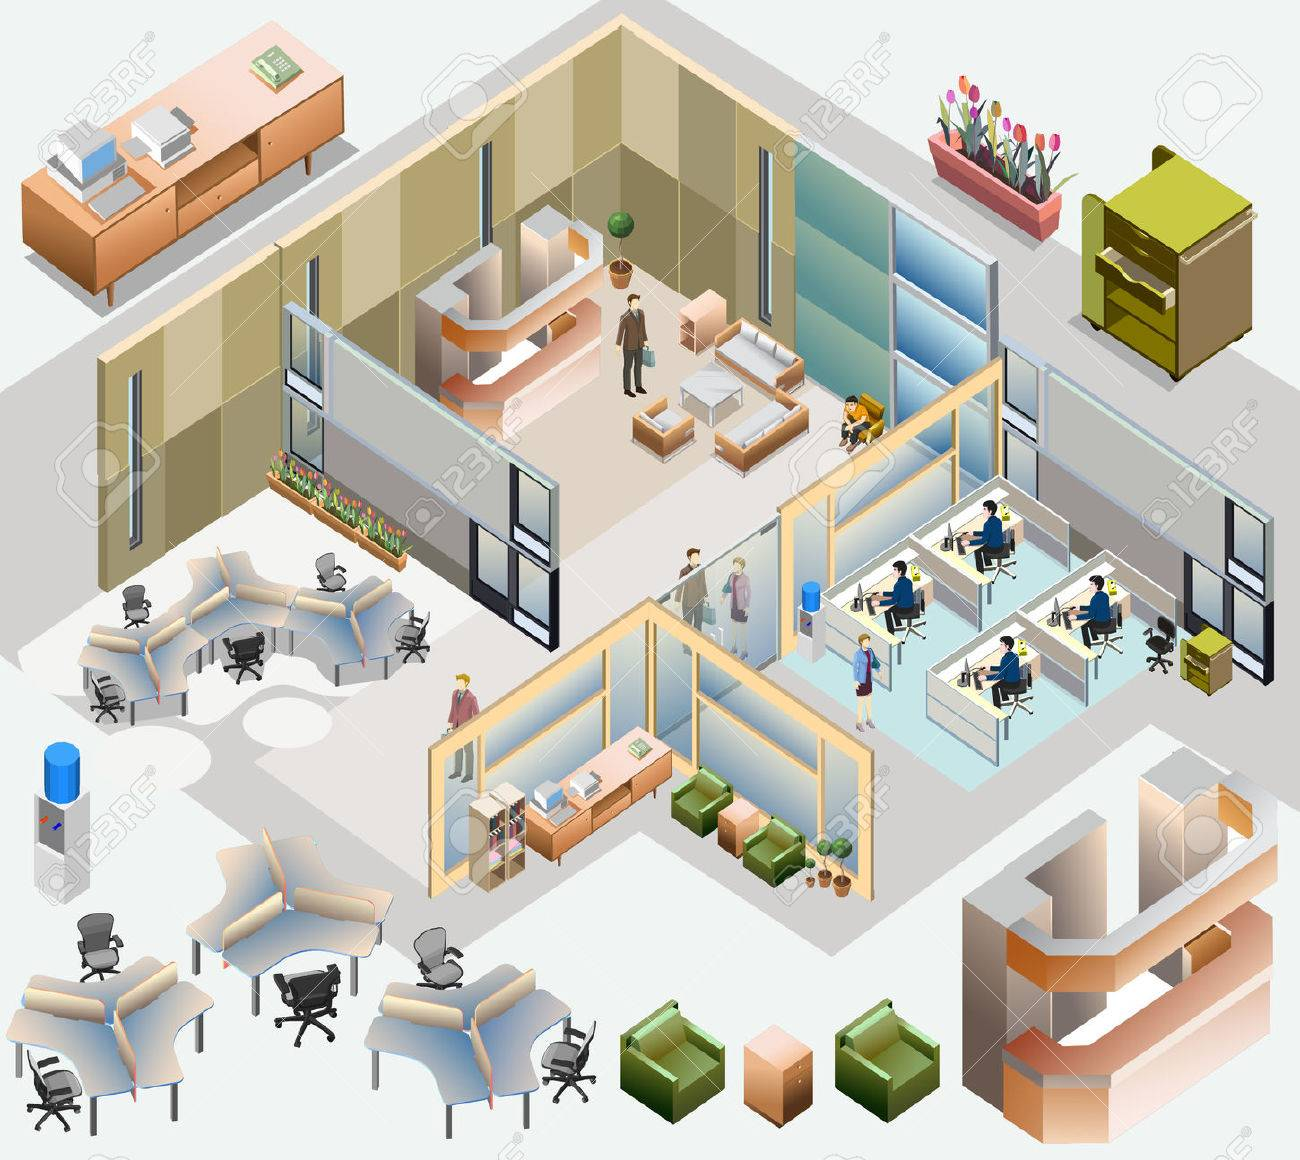 office isometric with completed workstation, meeting room, receptions, lobby, include business people, activity - 29246268